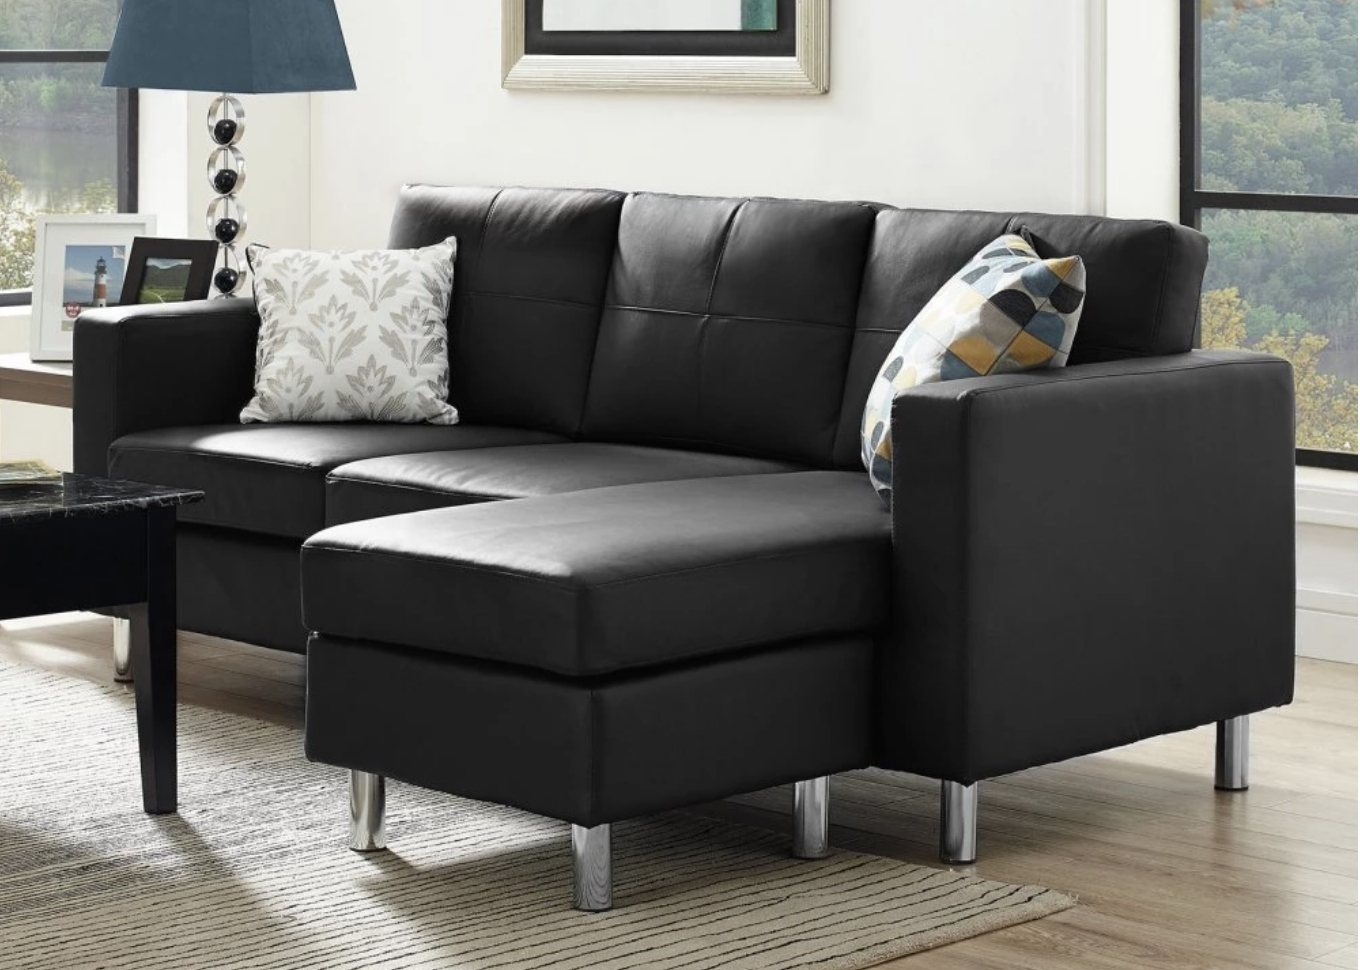 Well Known Sofas With High Backs Pertaining To 75 Modern Sectional Sofas For Small Spaces (2018) (View 14 of 15)